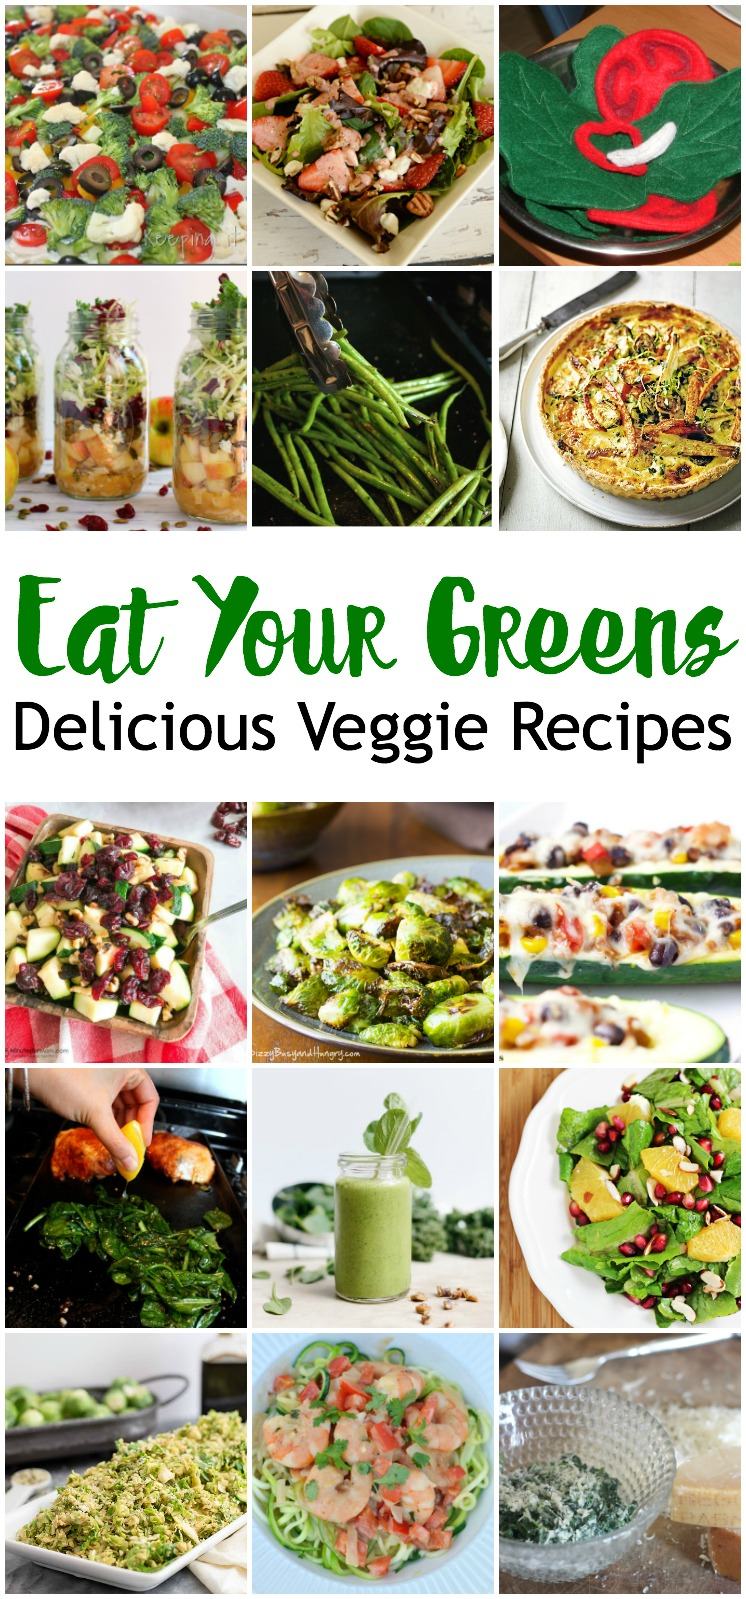 Delicious Vegetable recipes perfect for getting more veggies for family dinners